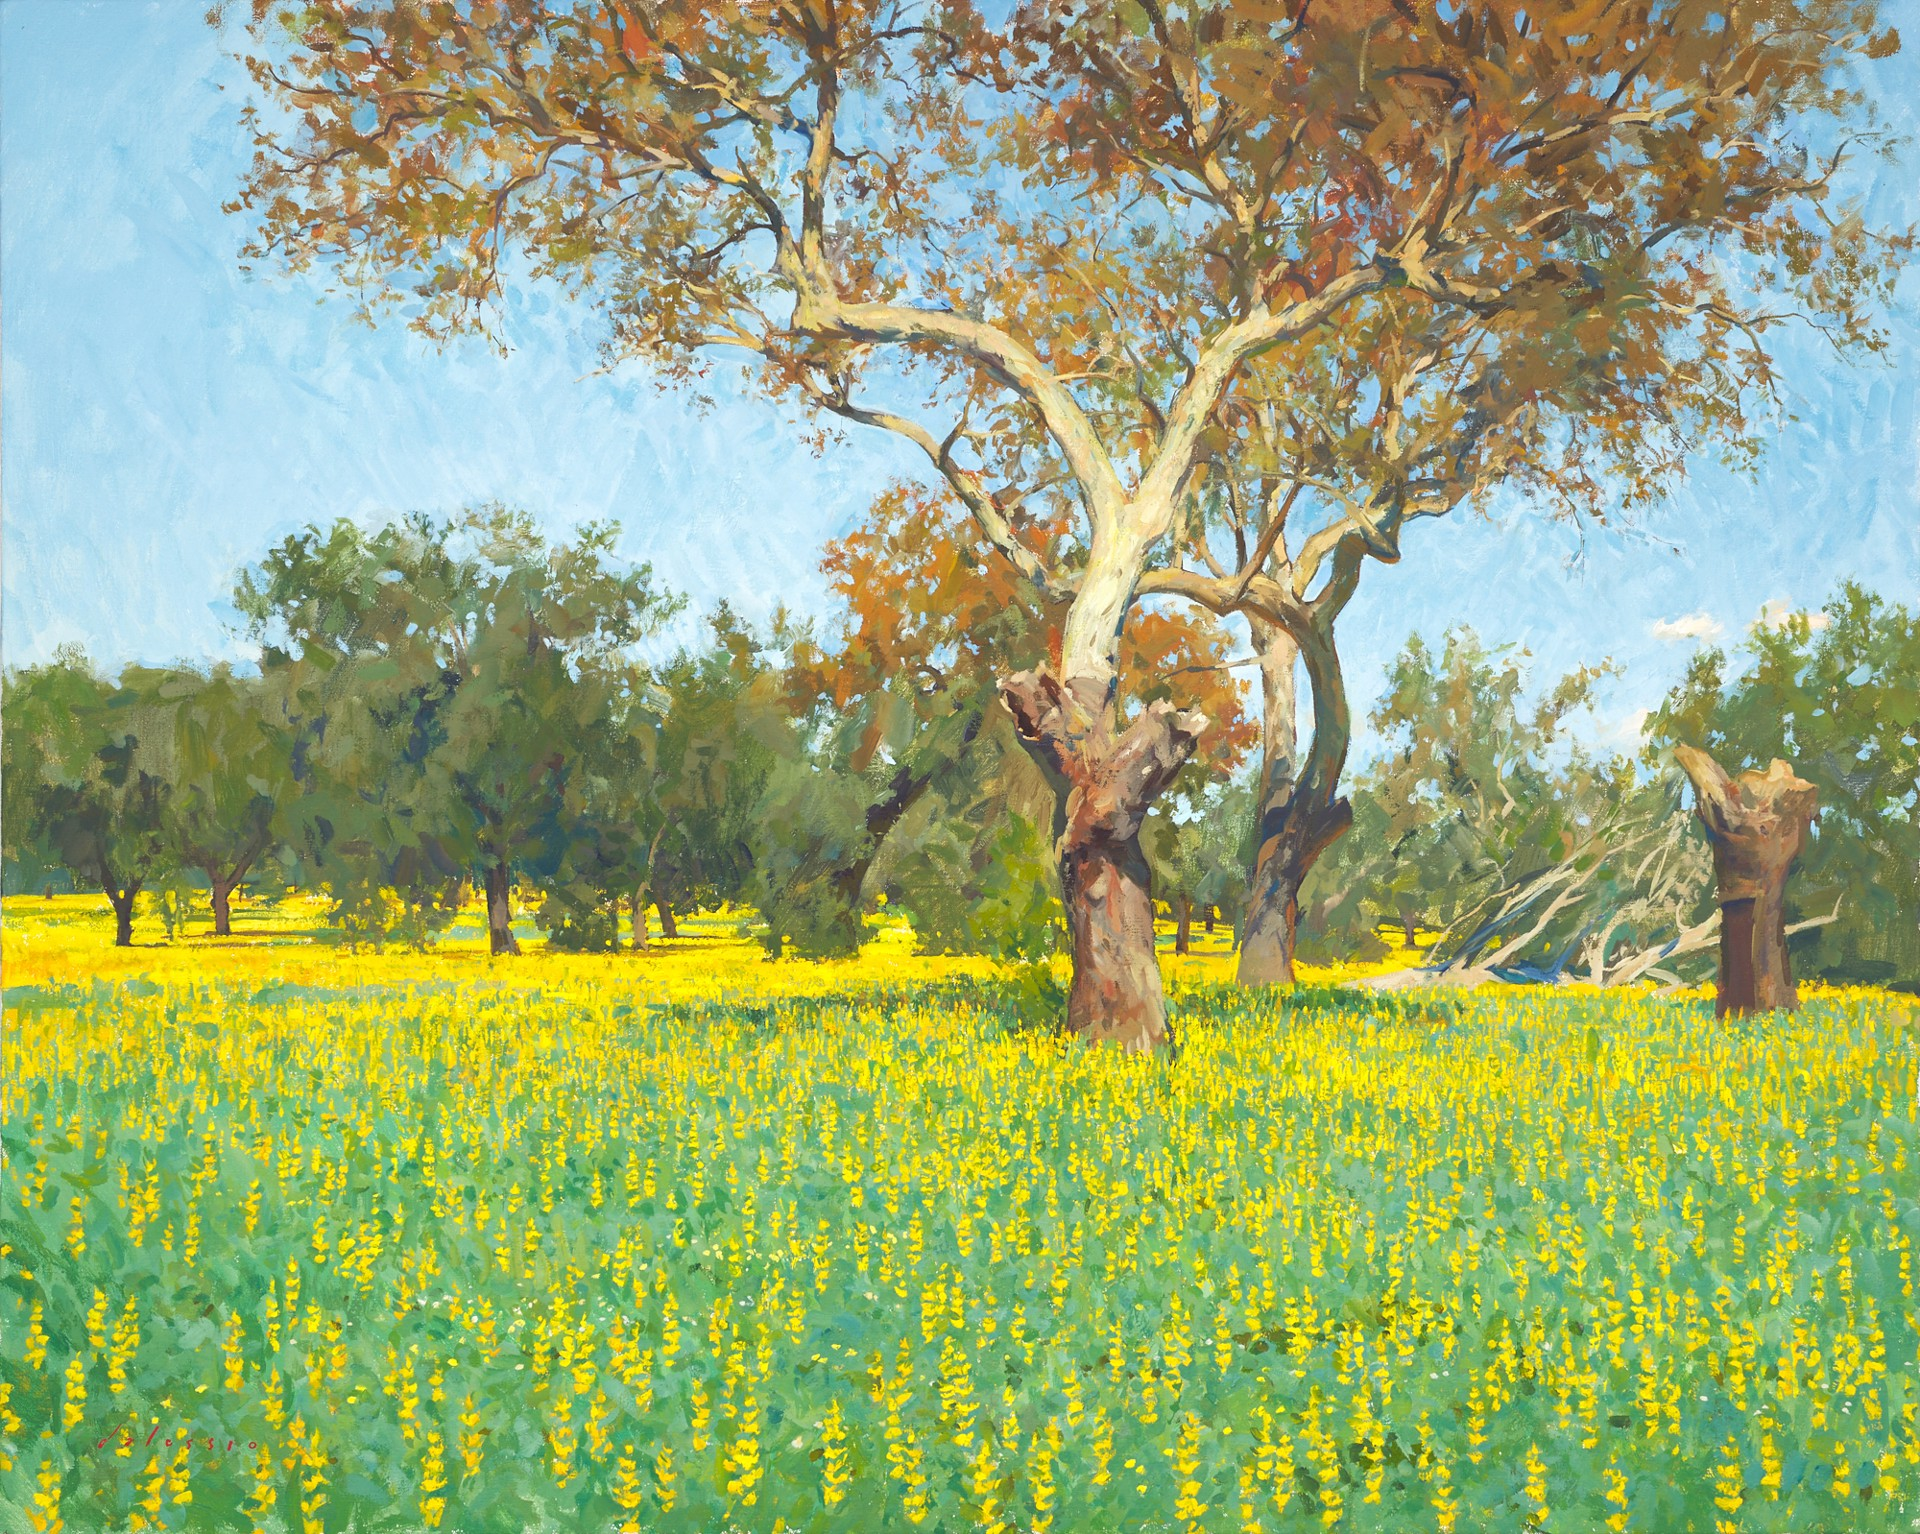 Yellow Lupin in a Cork Oak Forest by Marc Dalessio